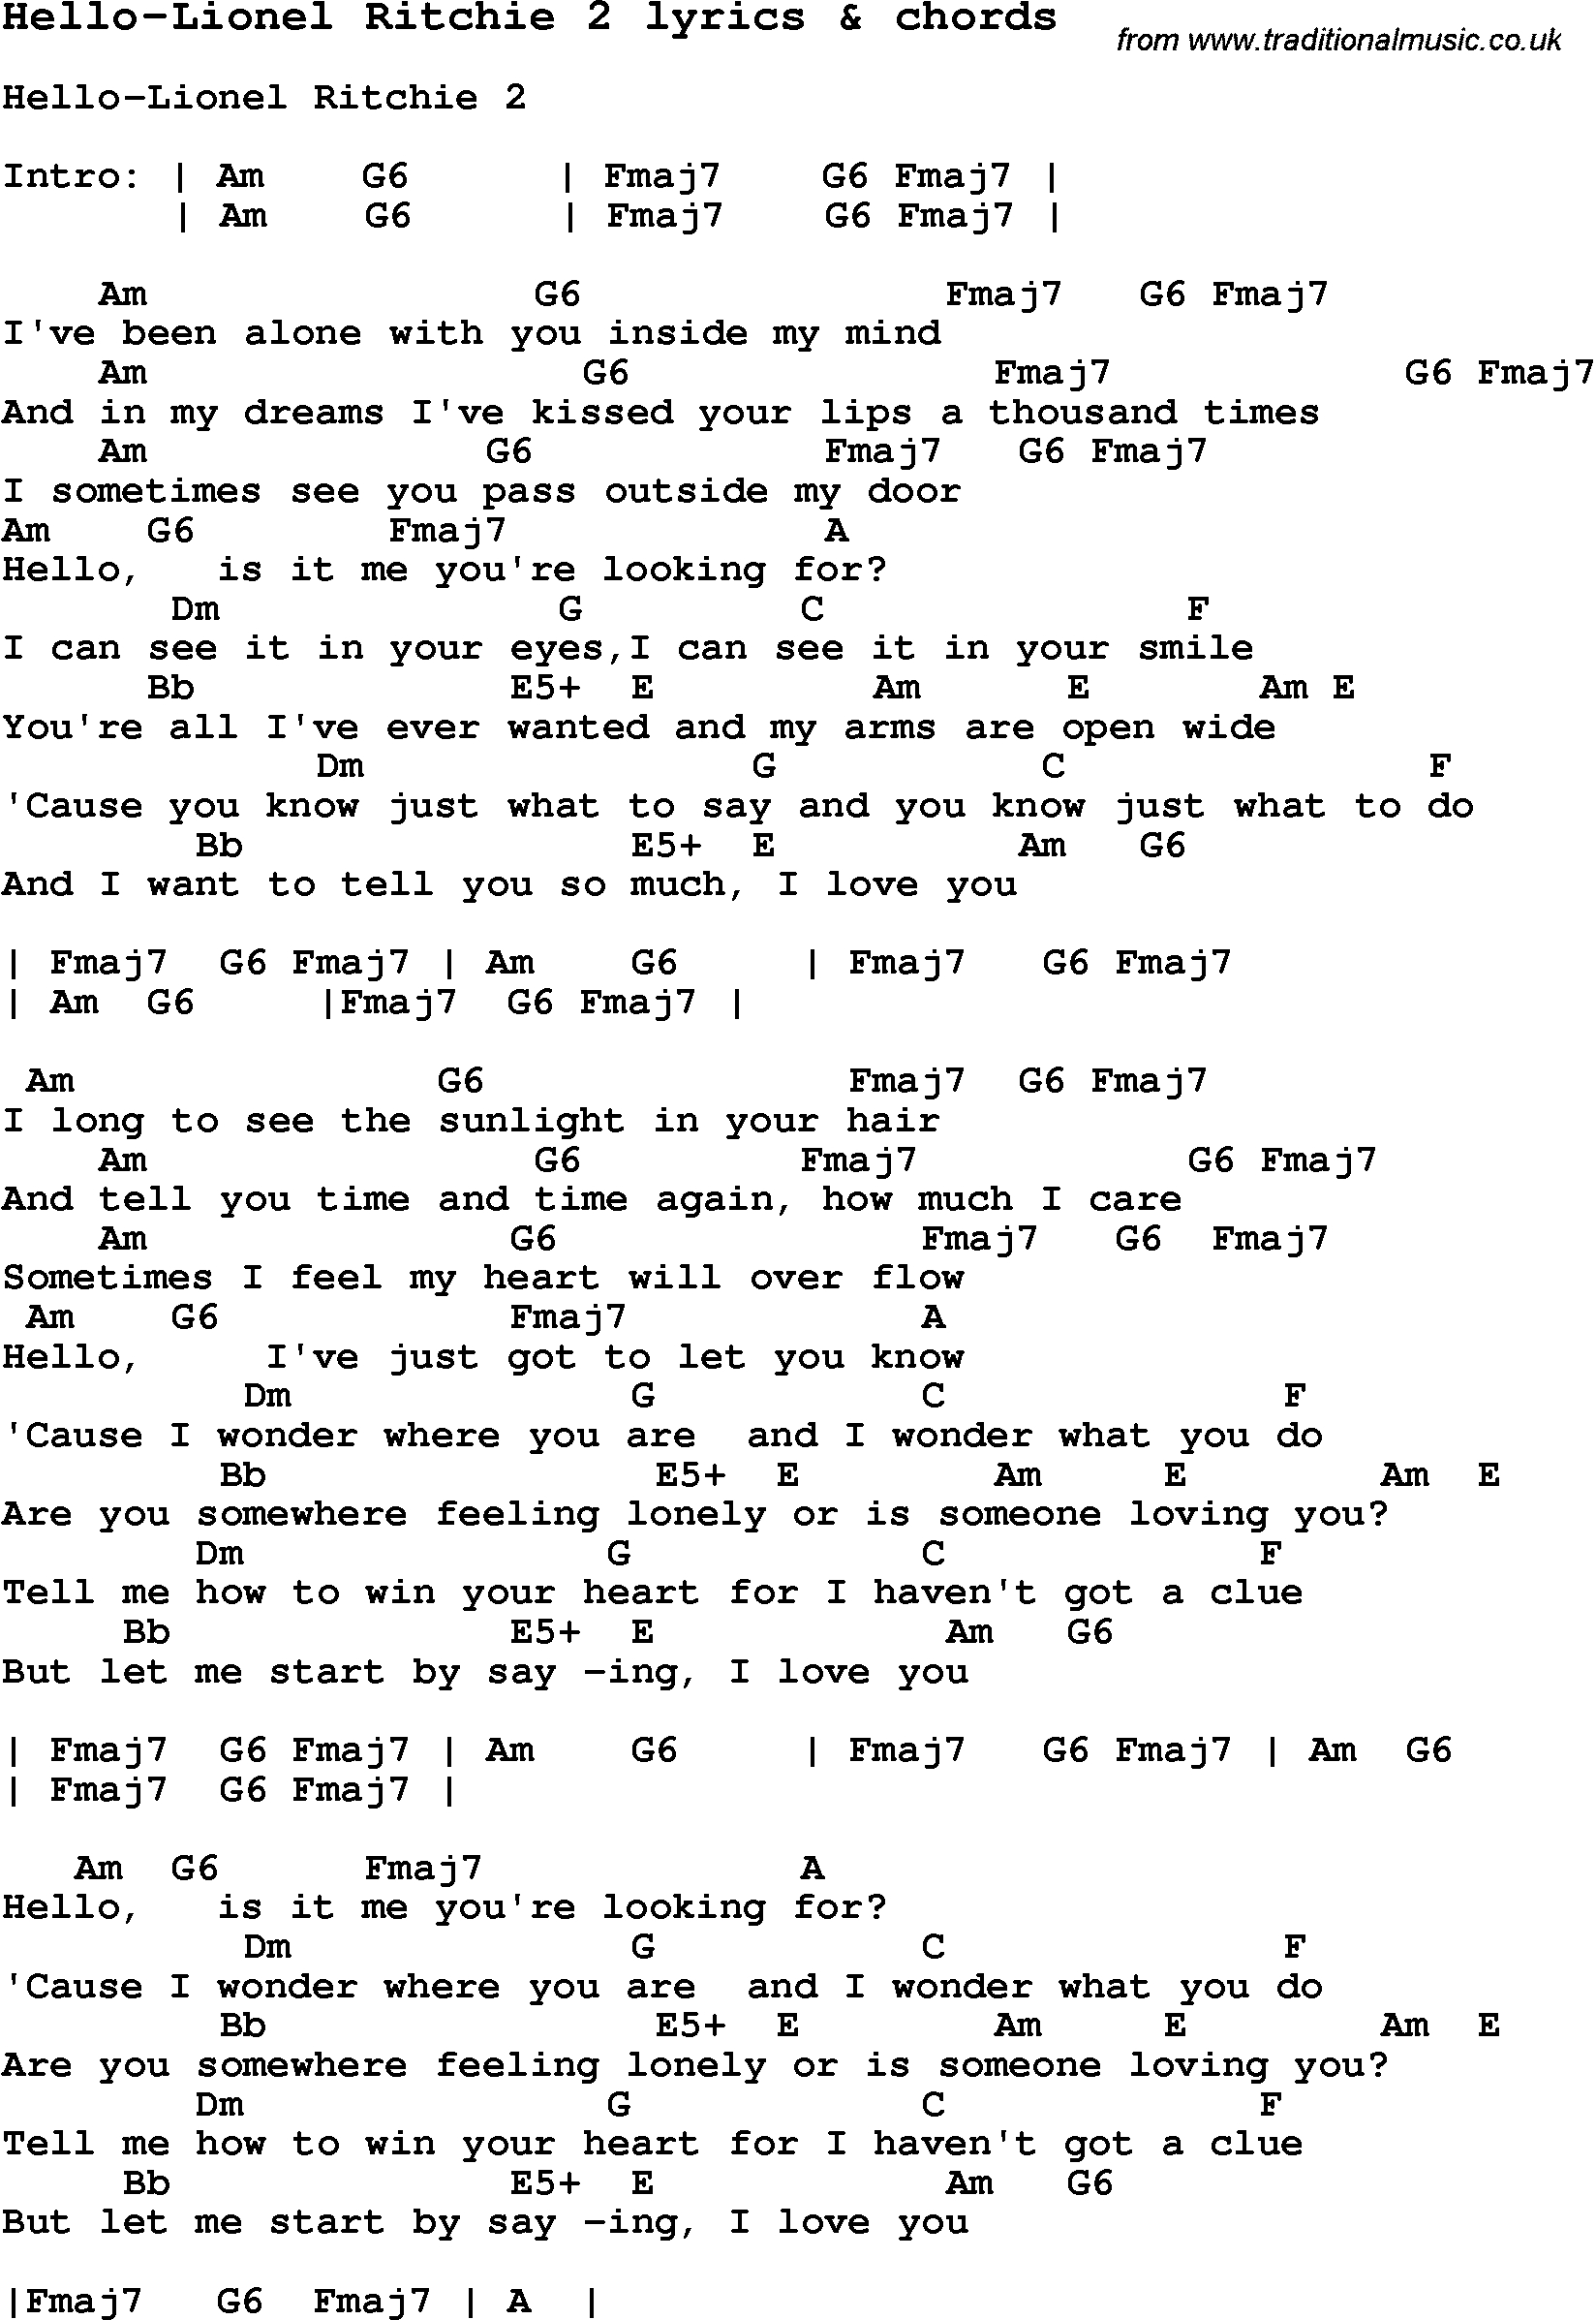 Hello Piano Chords Love Song Lyrics Forhello Lionel Ritchie 2 With Chords